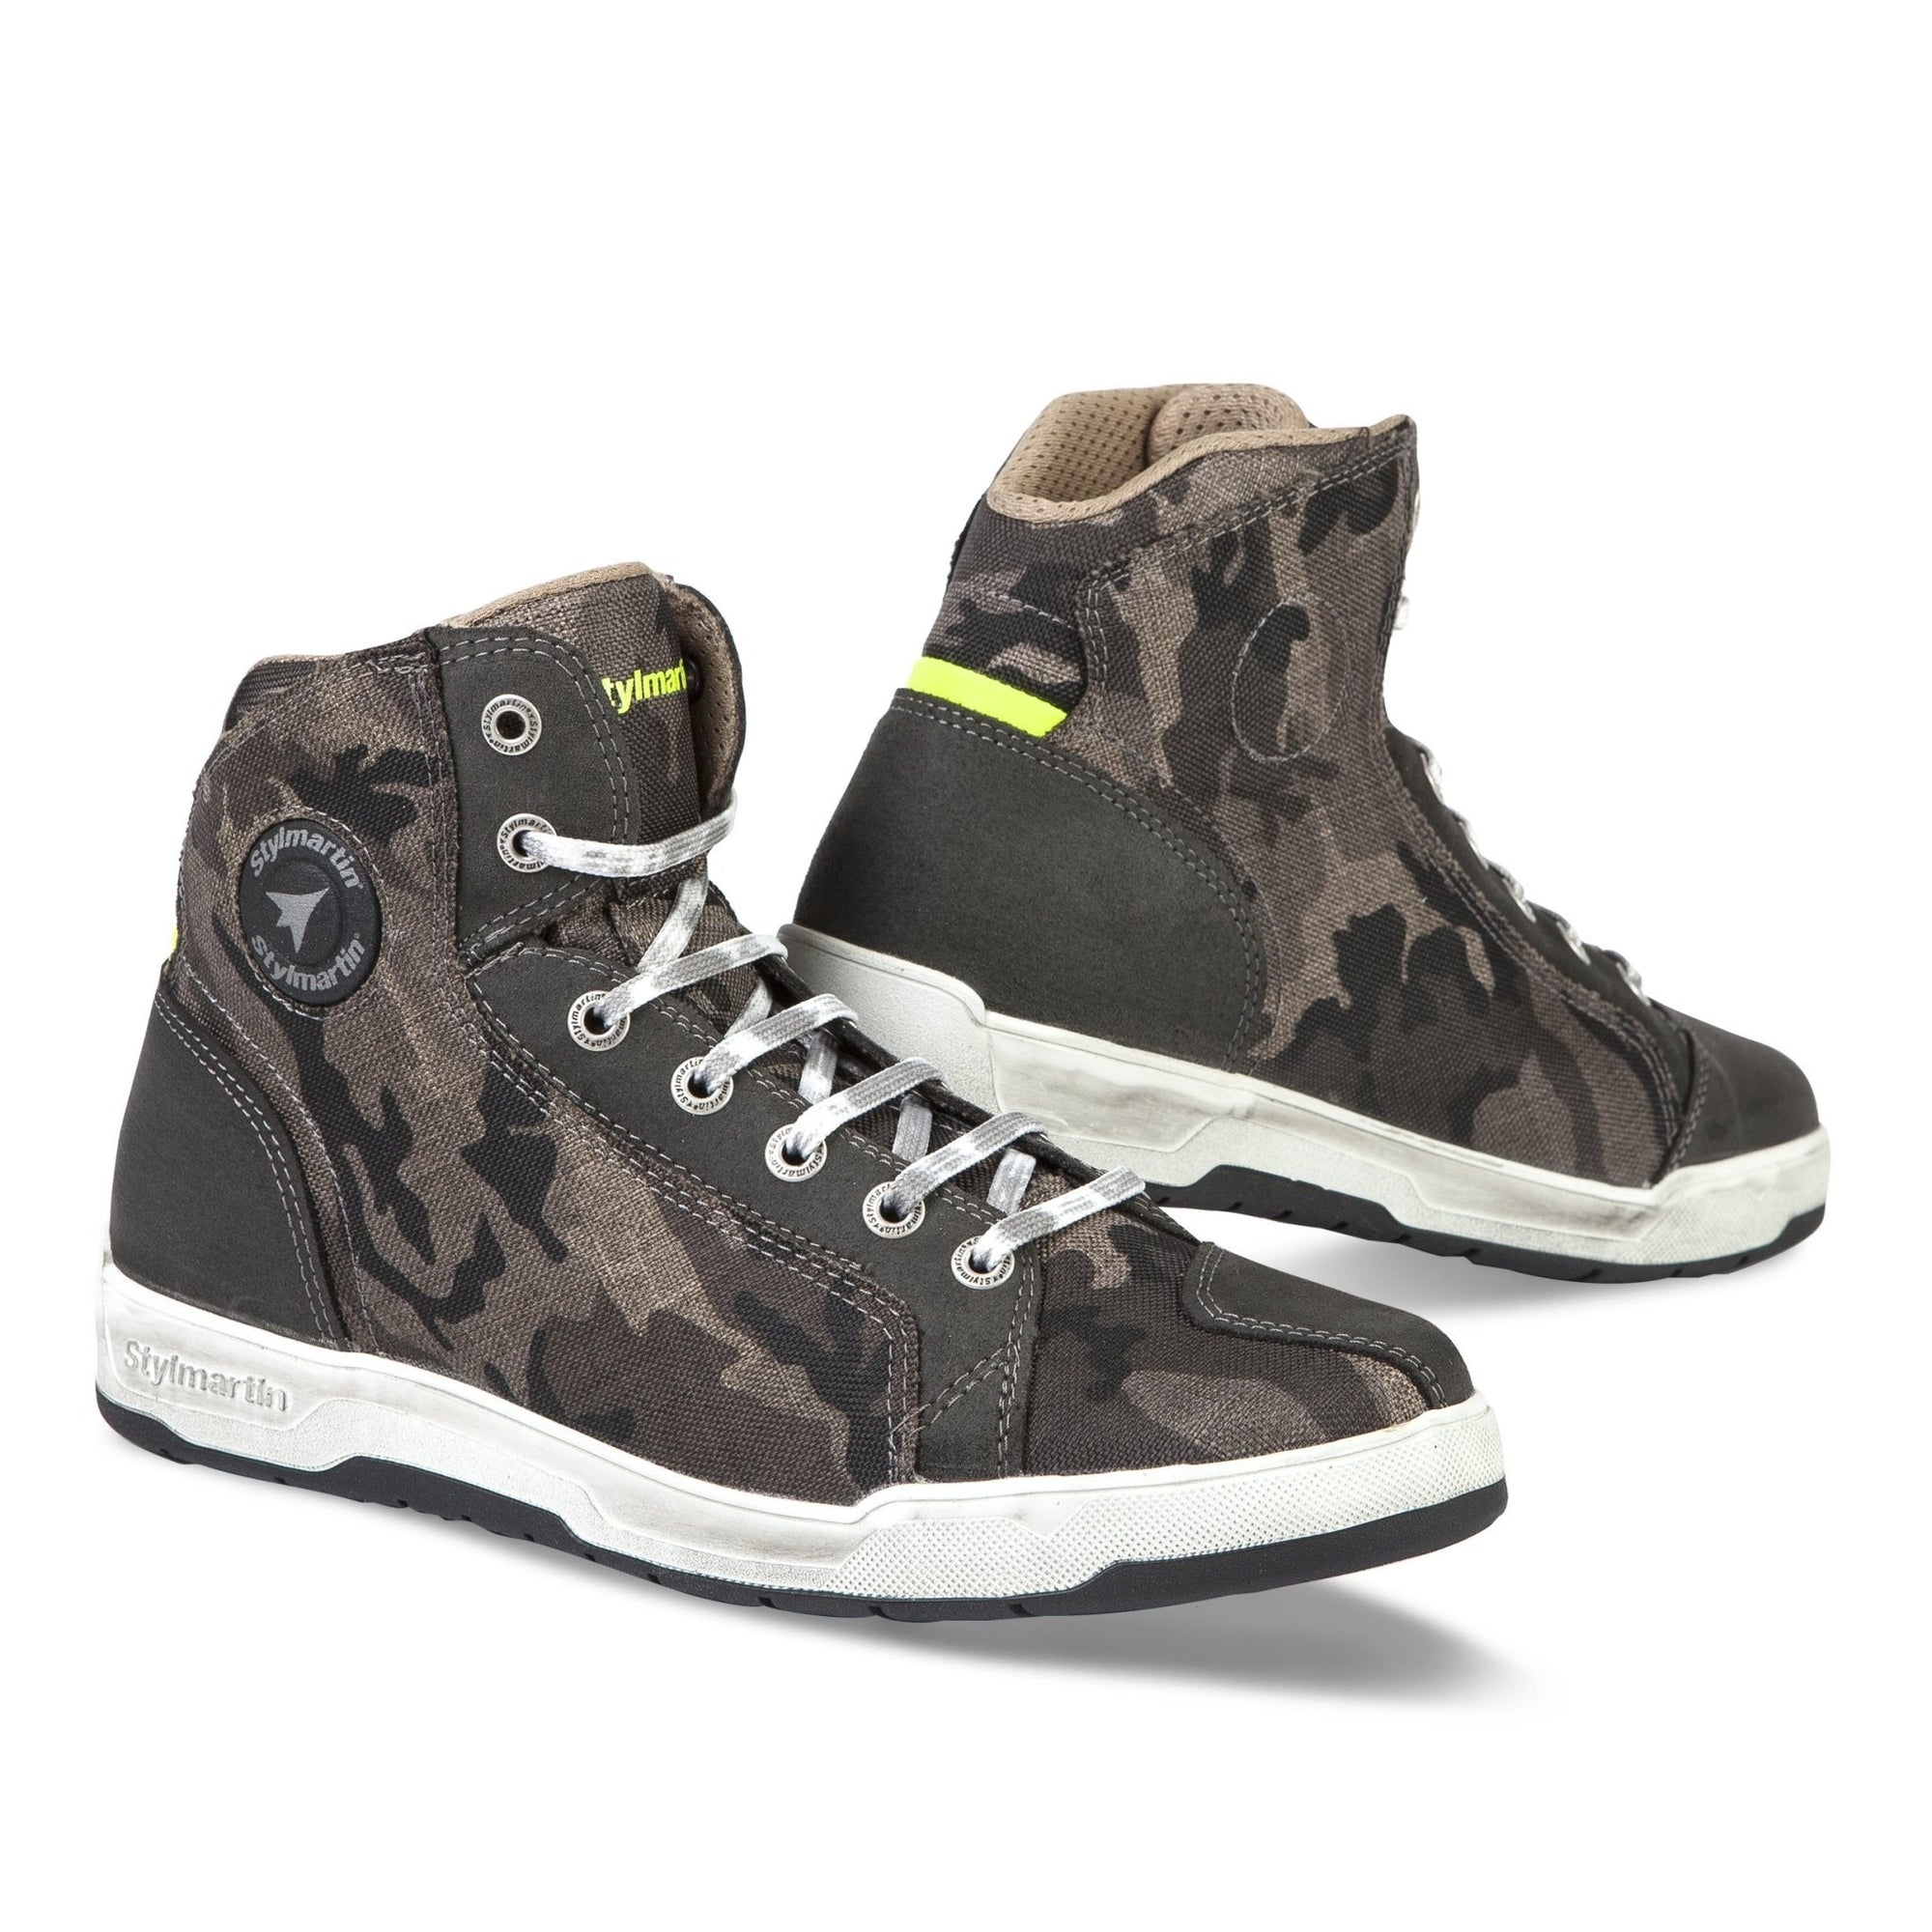 Stylmartin - Stylmartin Raptor Evo WP Sneaker in Camo - Boots - Salt Flats Clothing